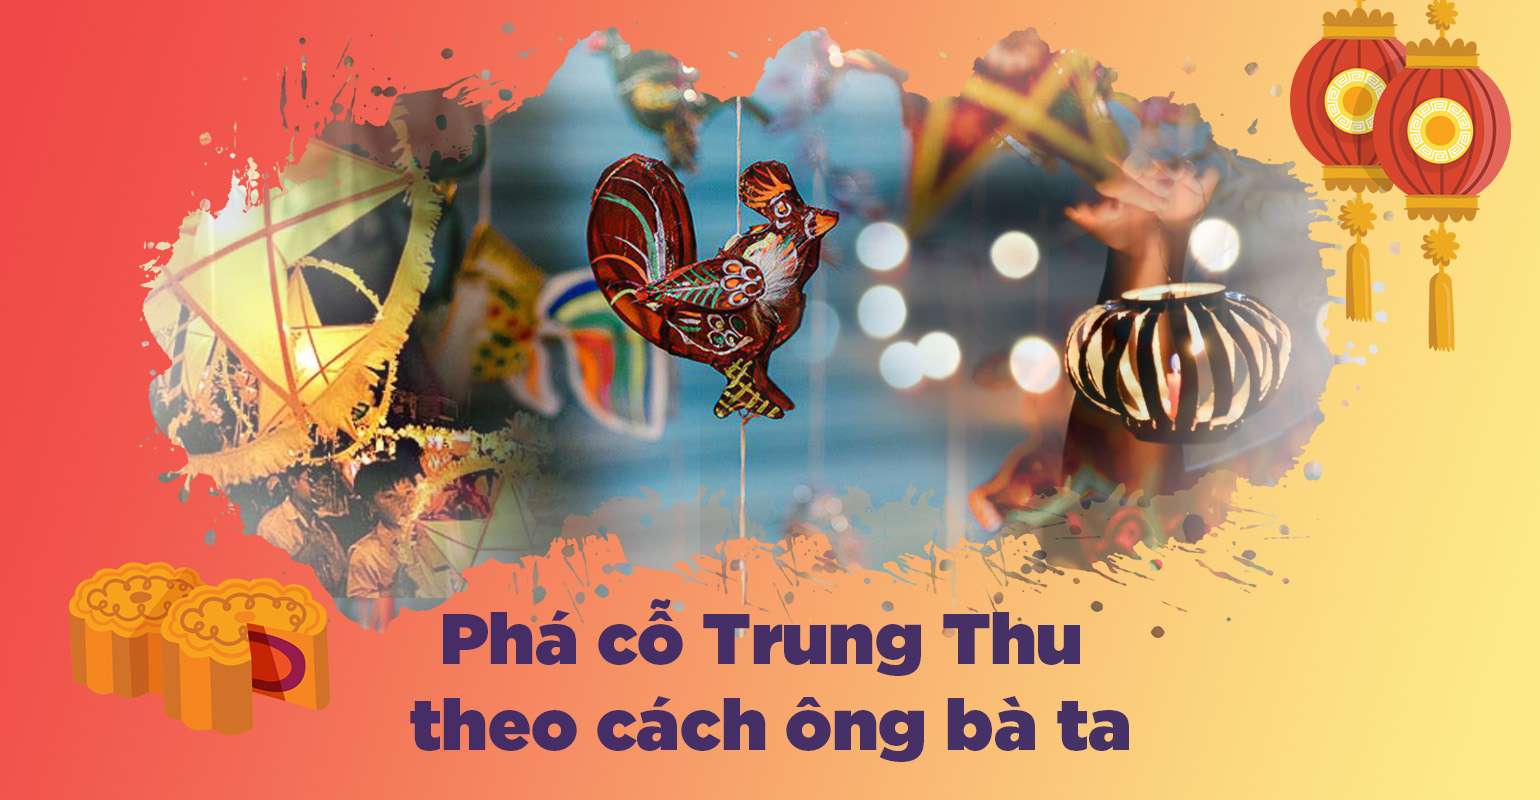 How to enjoy Mid-Autumn Festival by Vietnamese tradition